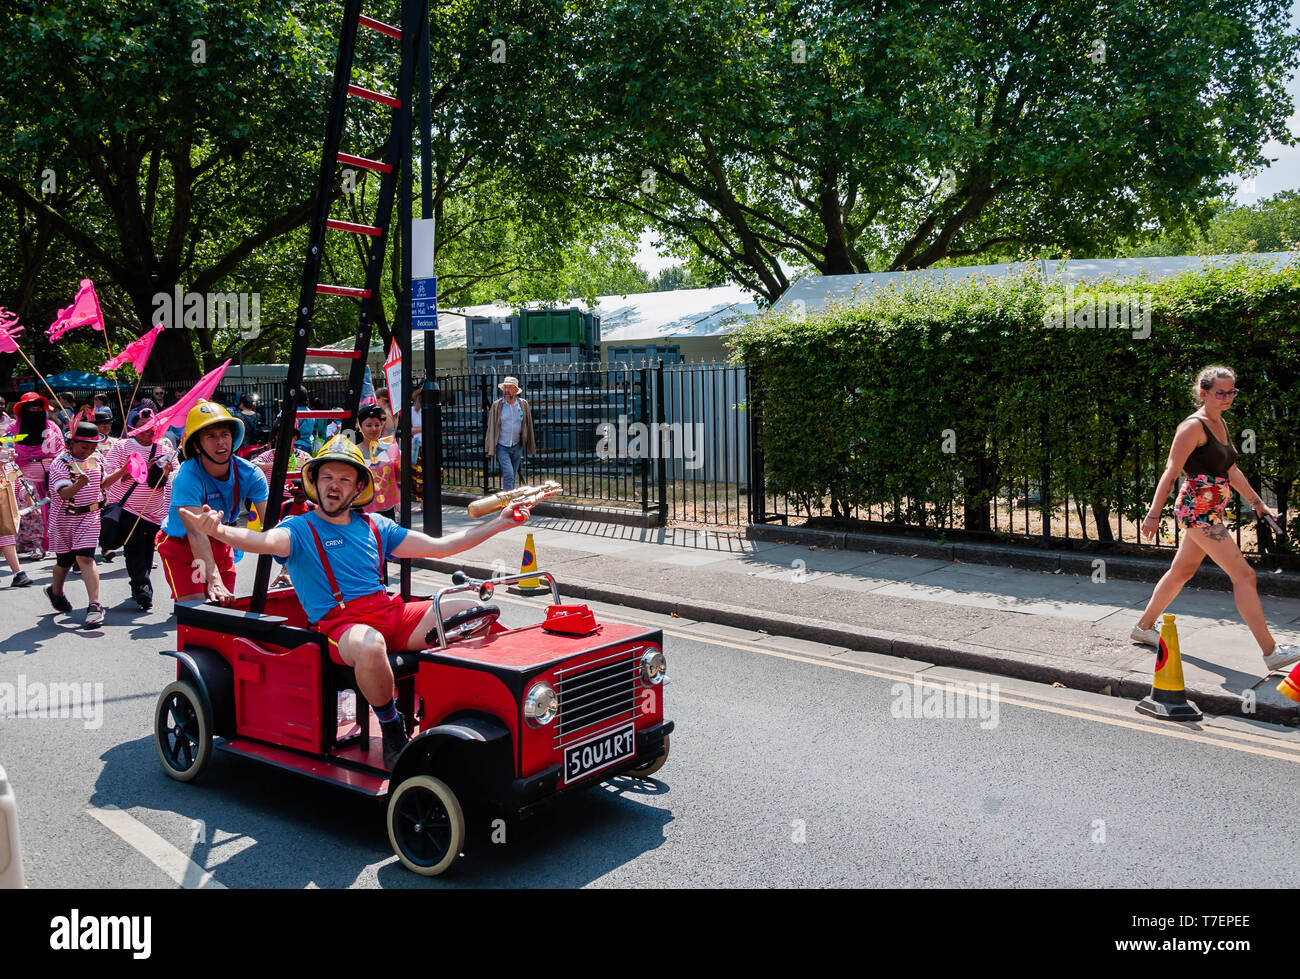 """London. UK. 7 July 2018,The Newham Carnival """"The Circus Cavalcade"""" to celebrate the 250th anniversary of the circus. - Stock Image"""